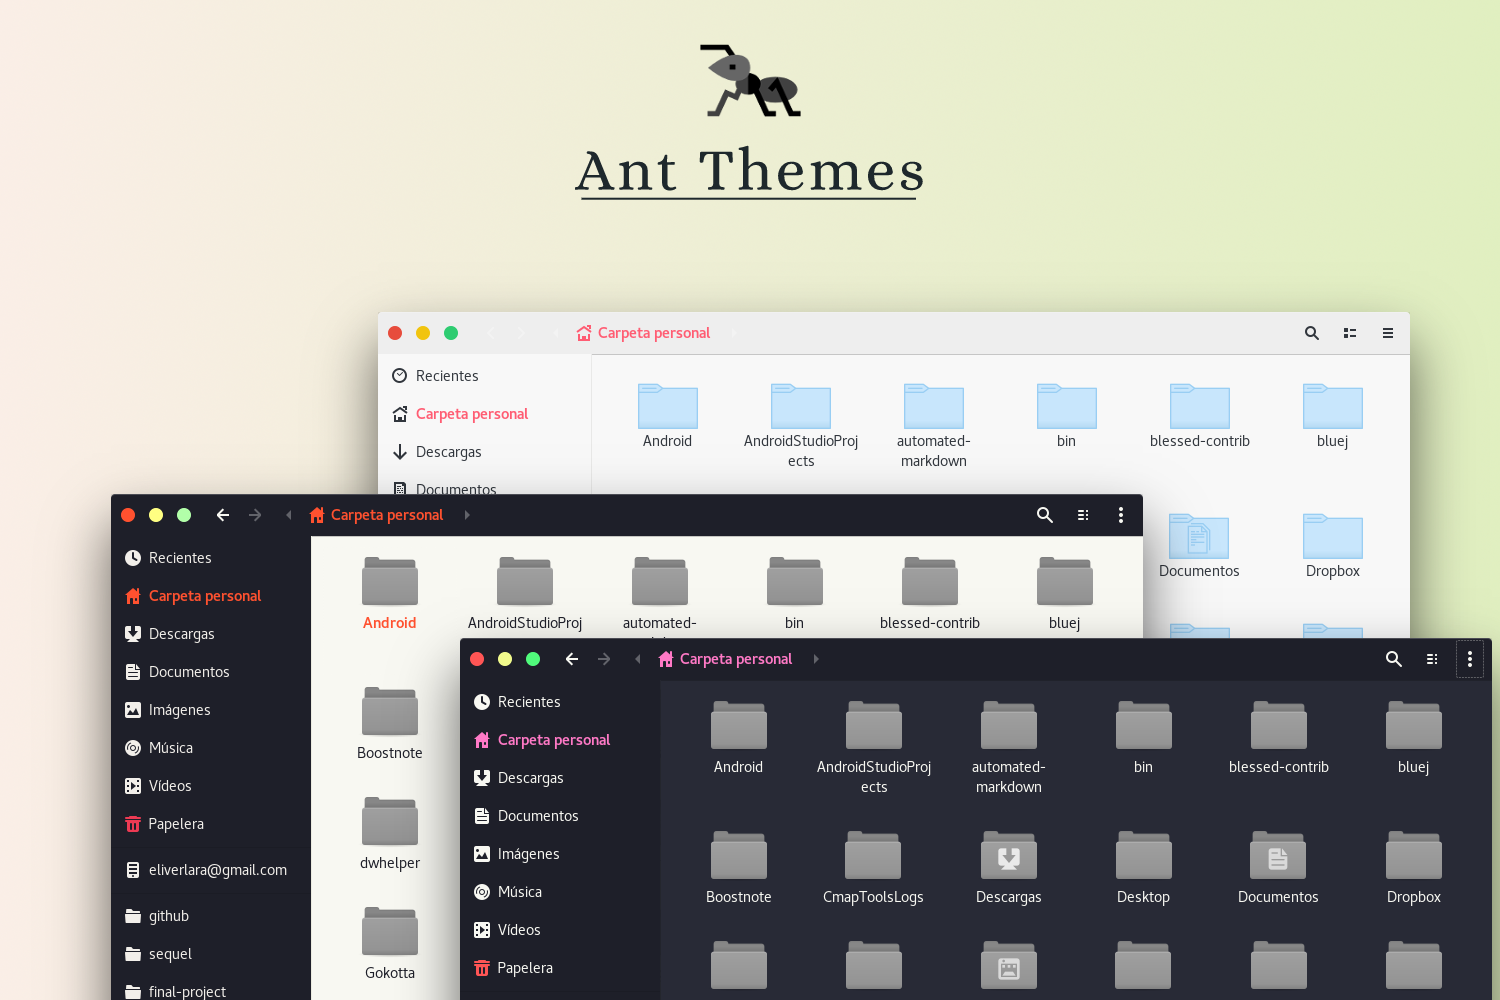 The electric ant themes